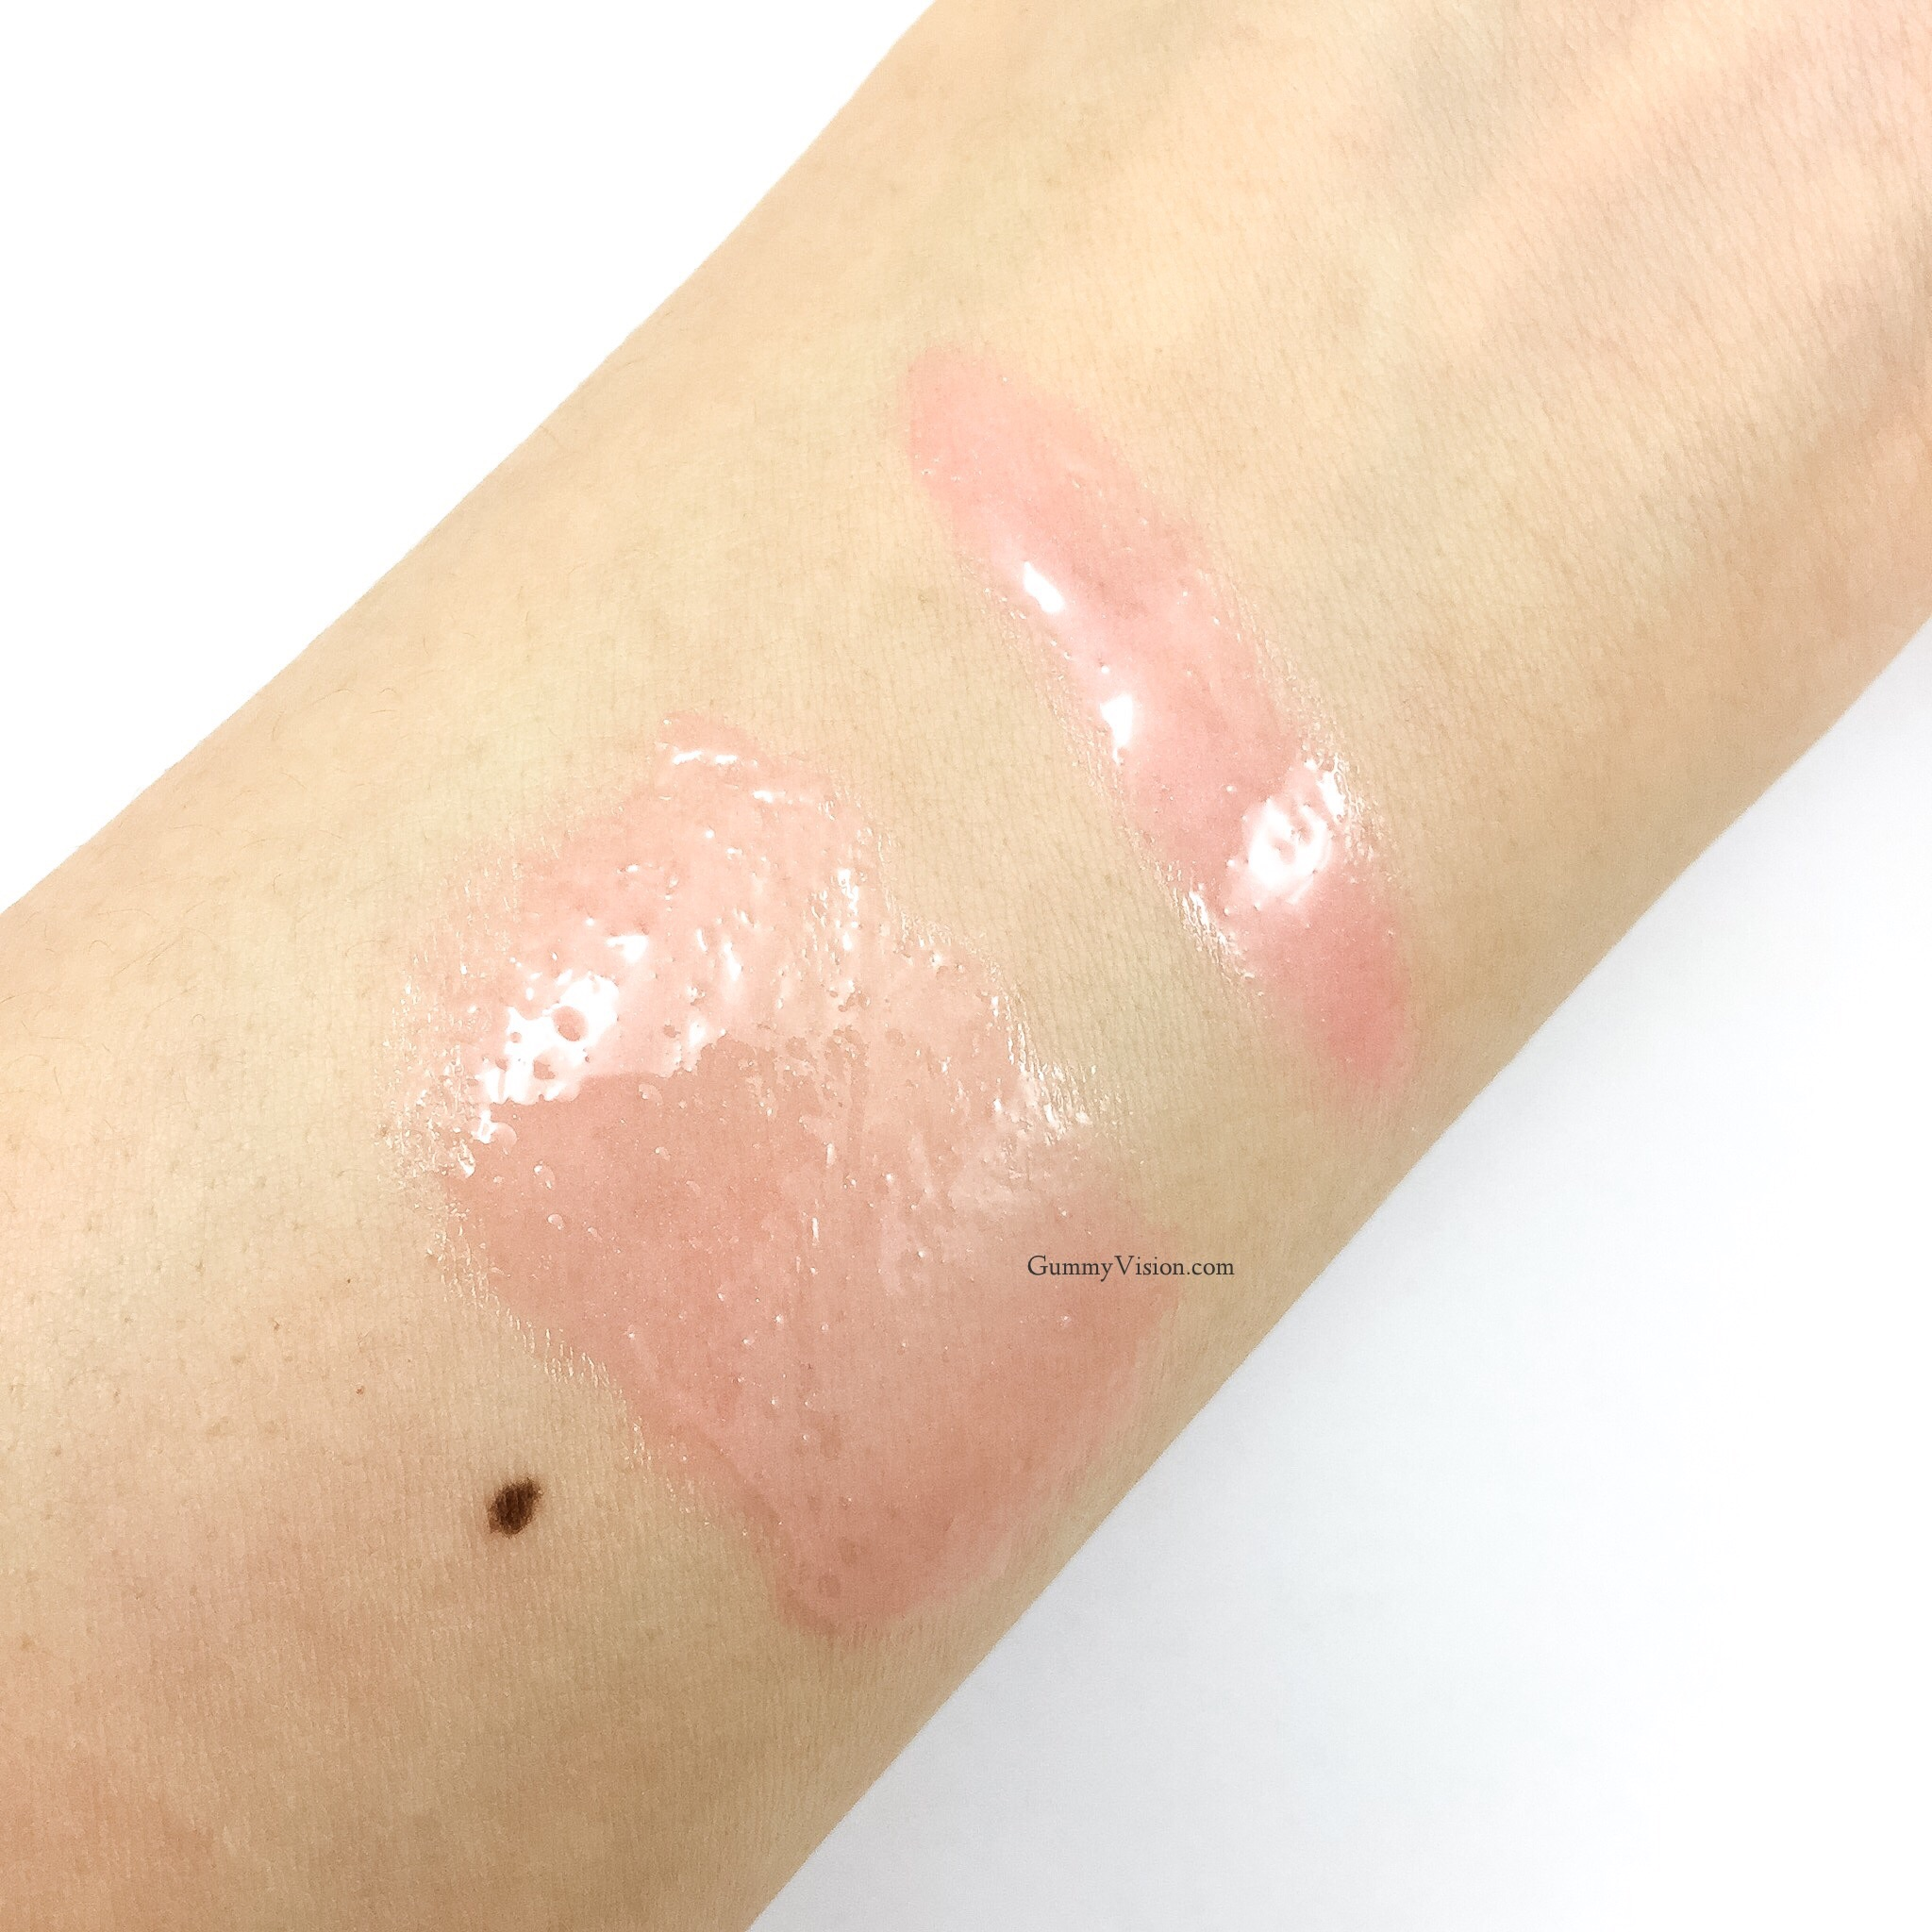 YSL Volupte Tint-In-Oil in 4 I Rose You swatches - www.gummyvision.com